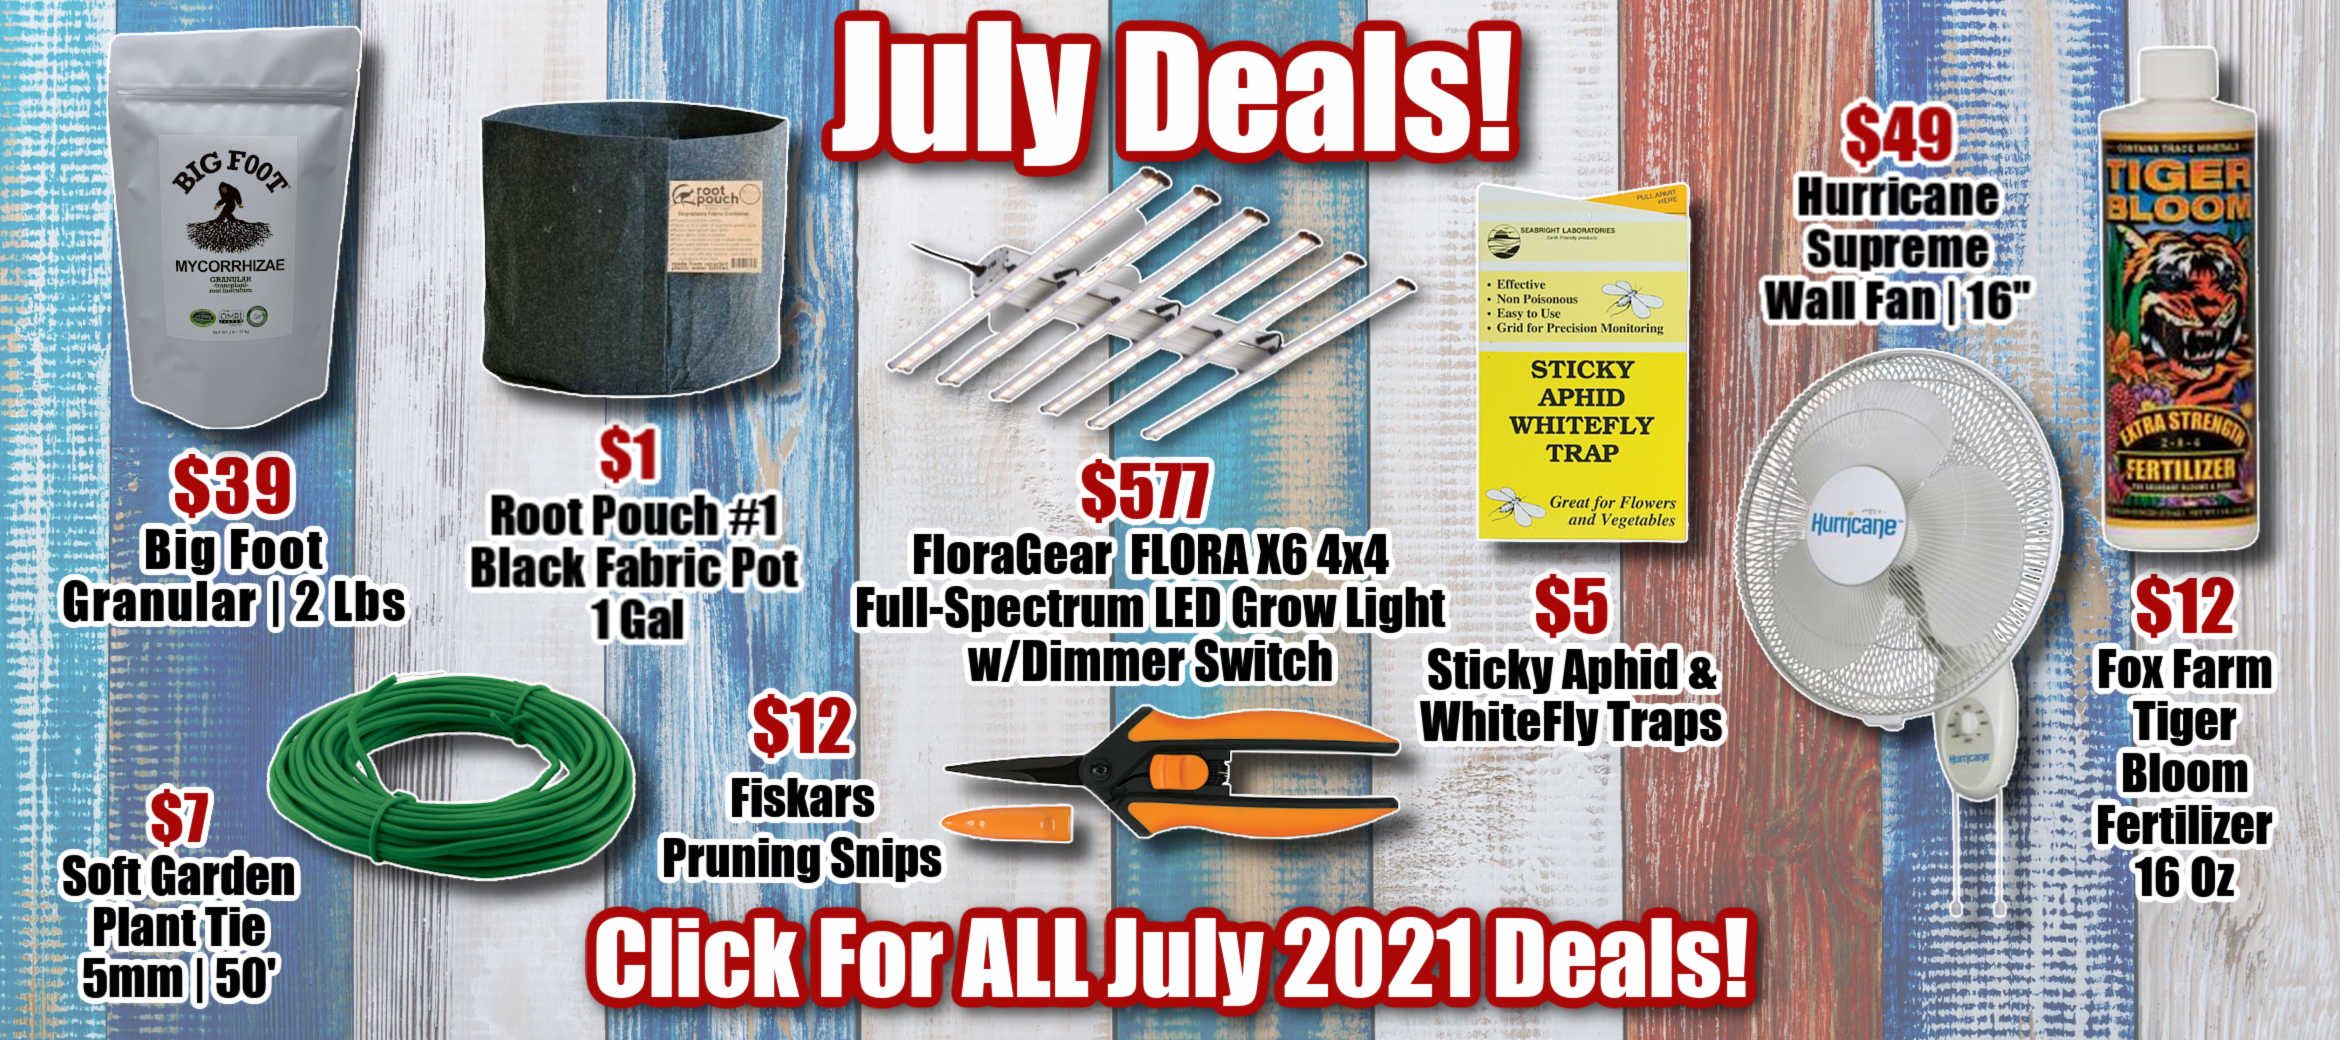 Monthly Specials for July